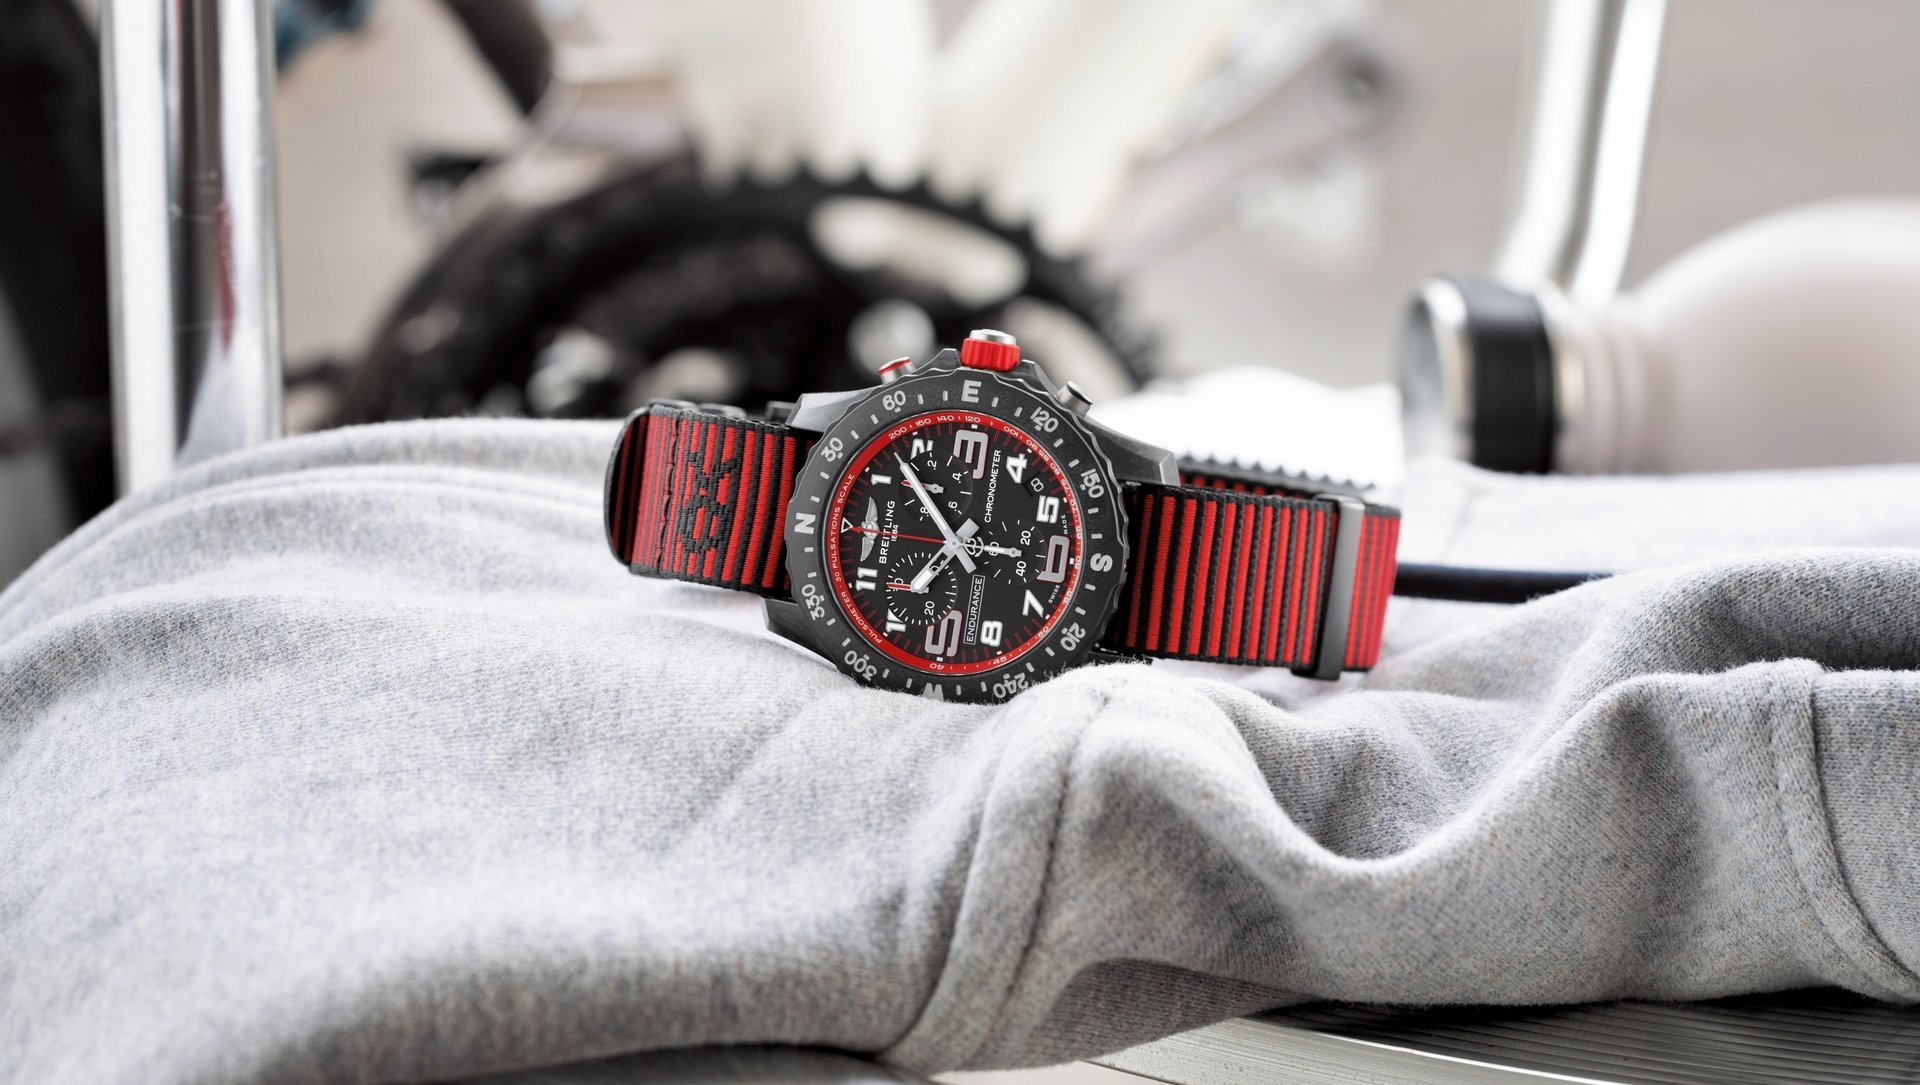 04_endurance-pro-with-a-red-inner-bezel-and-outerknown-econyl-yarn-nato-strap.jpg